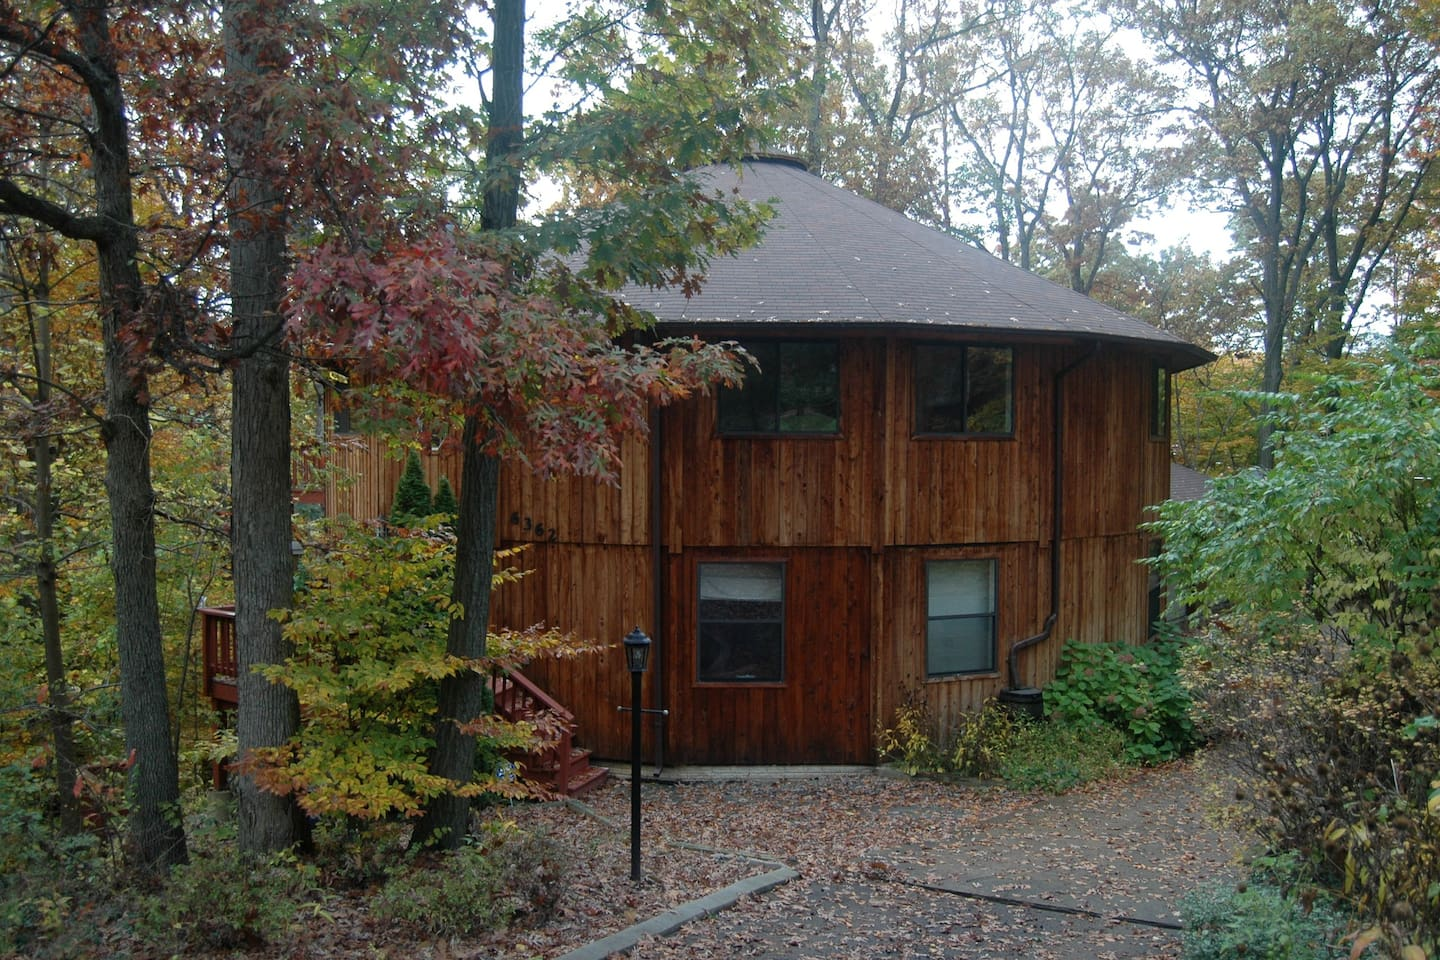 Our round house nestled in the trees.